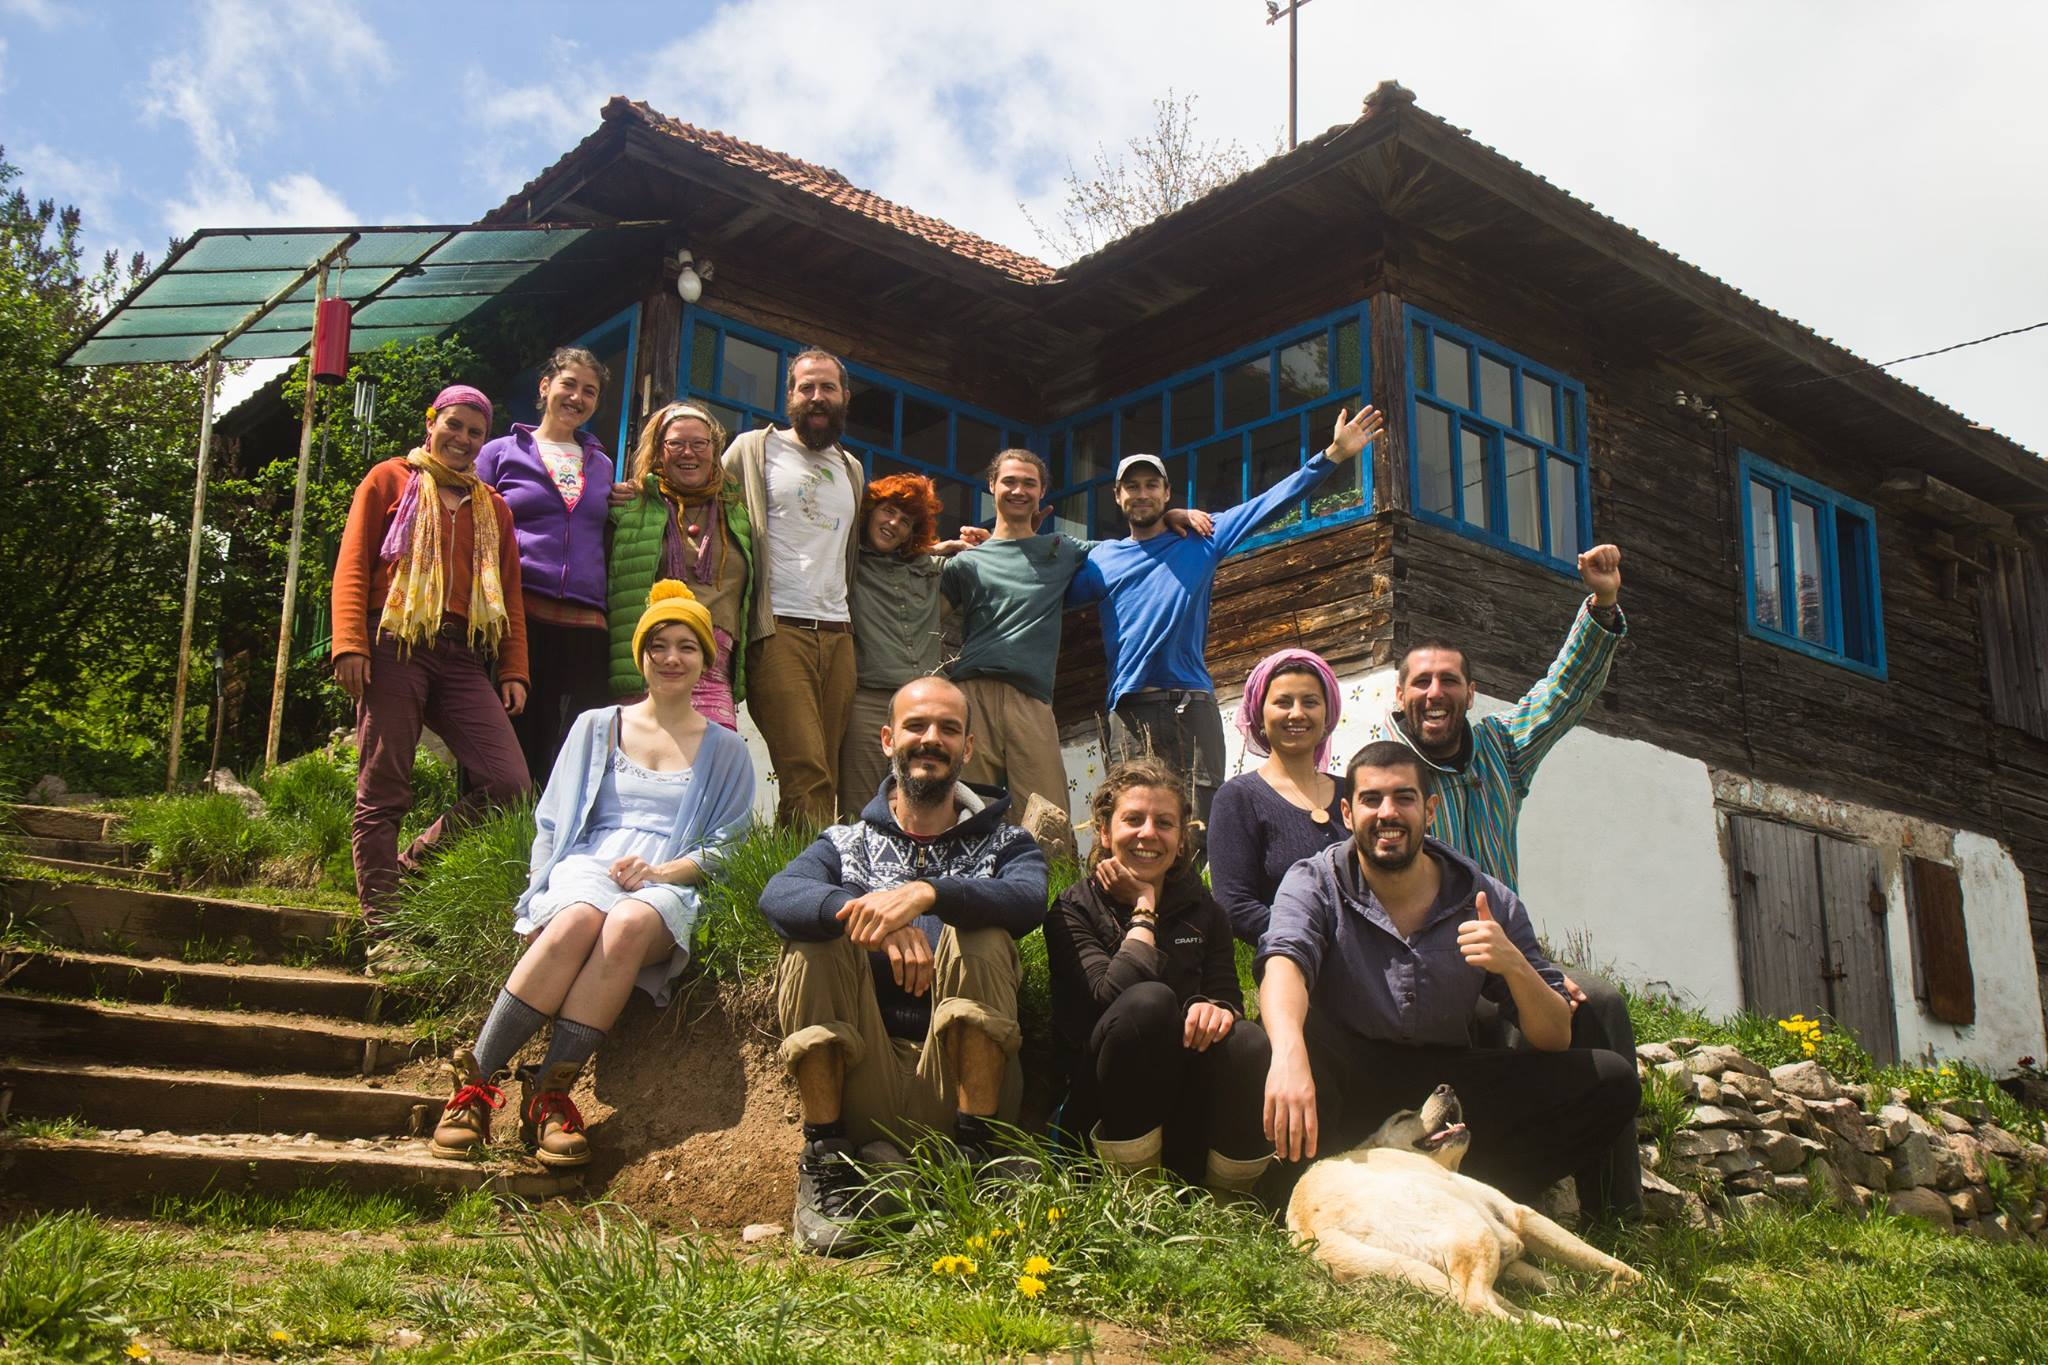 Dandelions and Dew Drops - Our time at Aurora Community, Romania